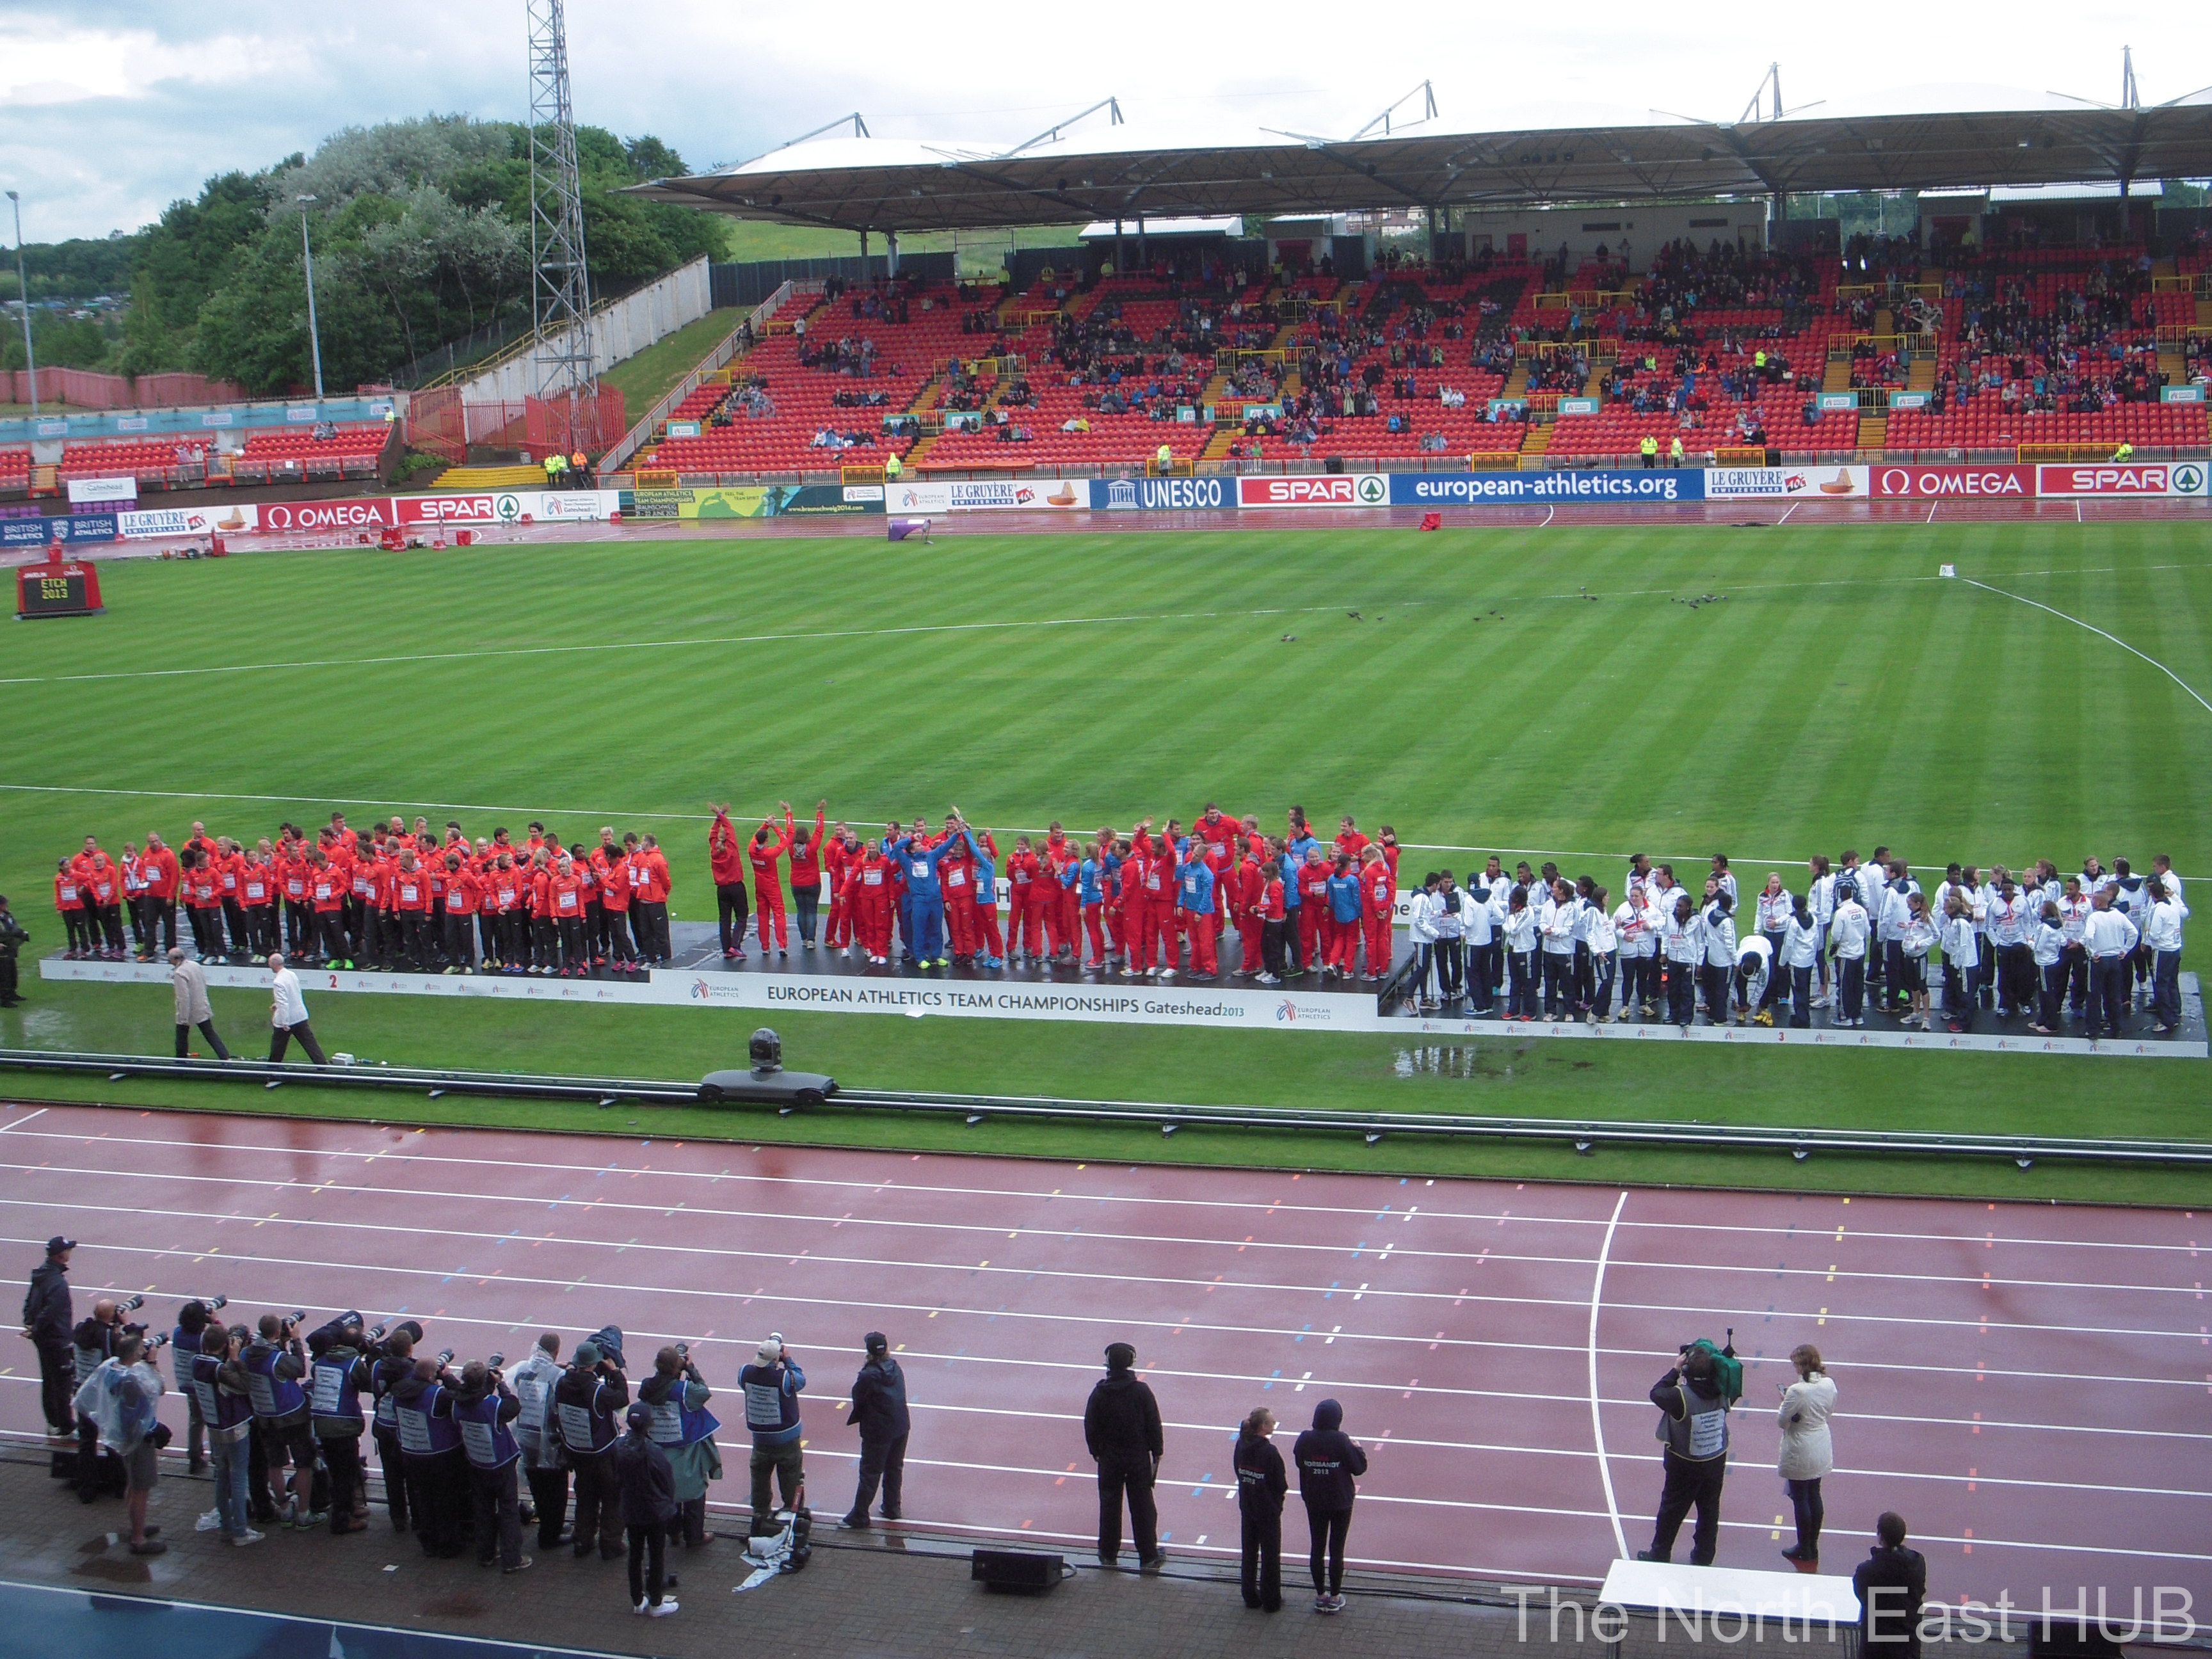 GBR, RUS, GER teams in gateshead 2013